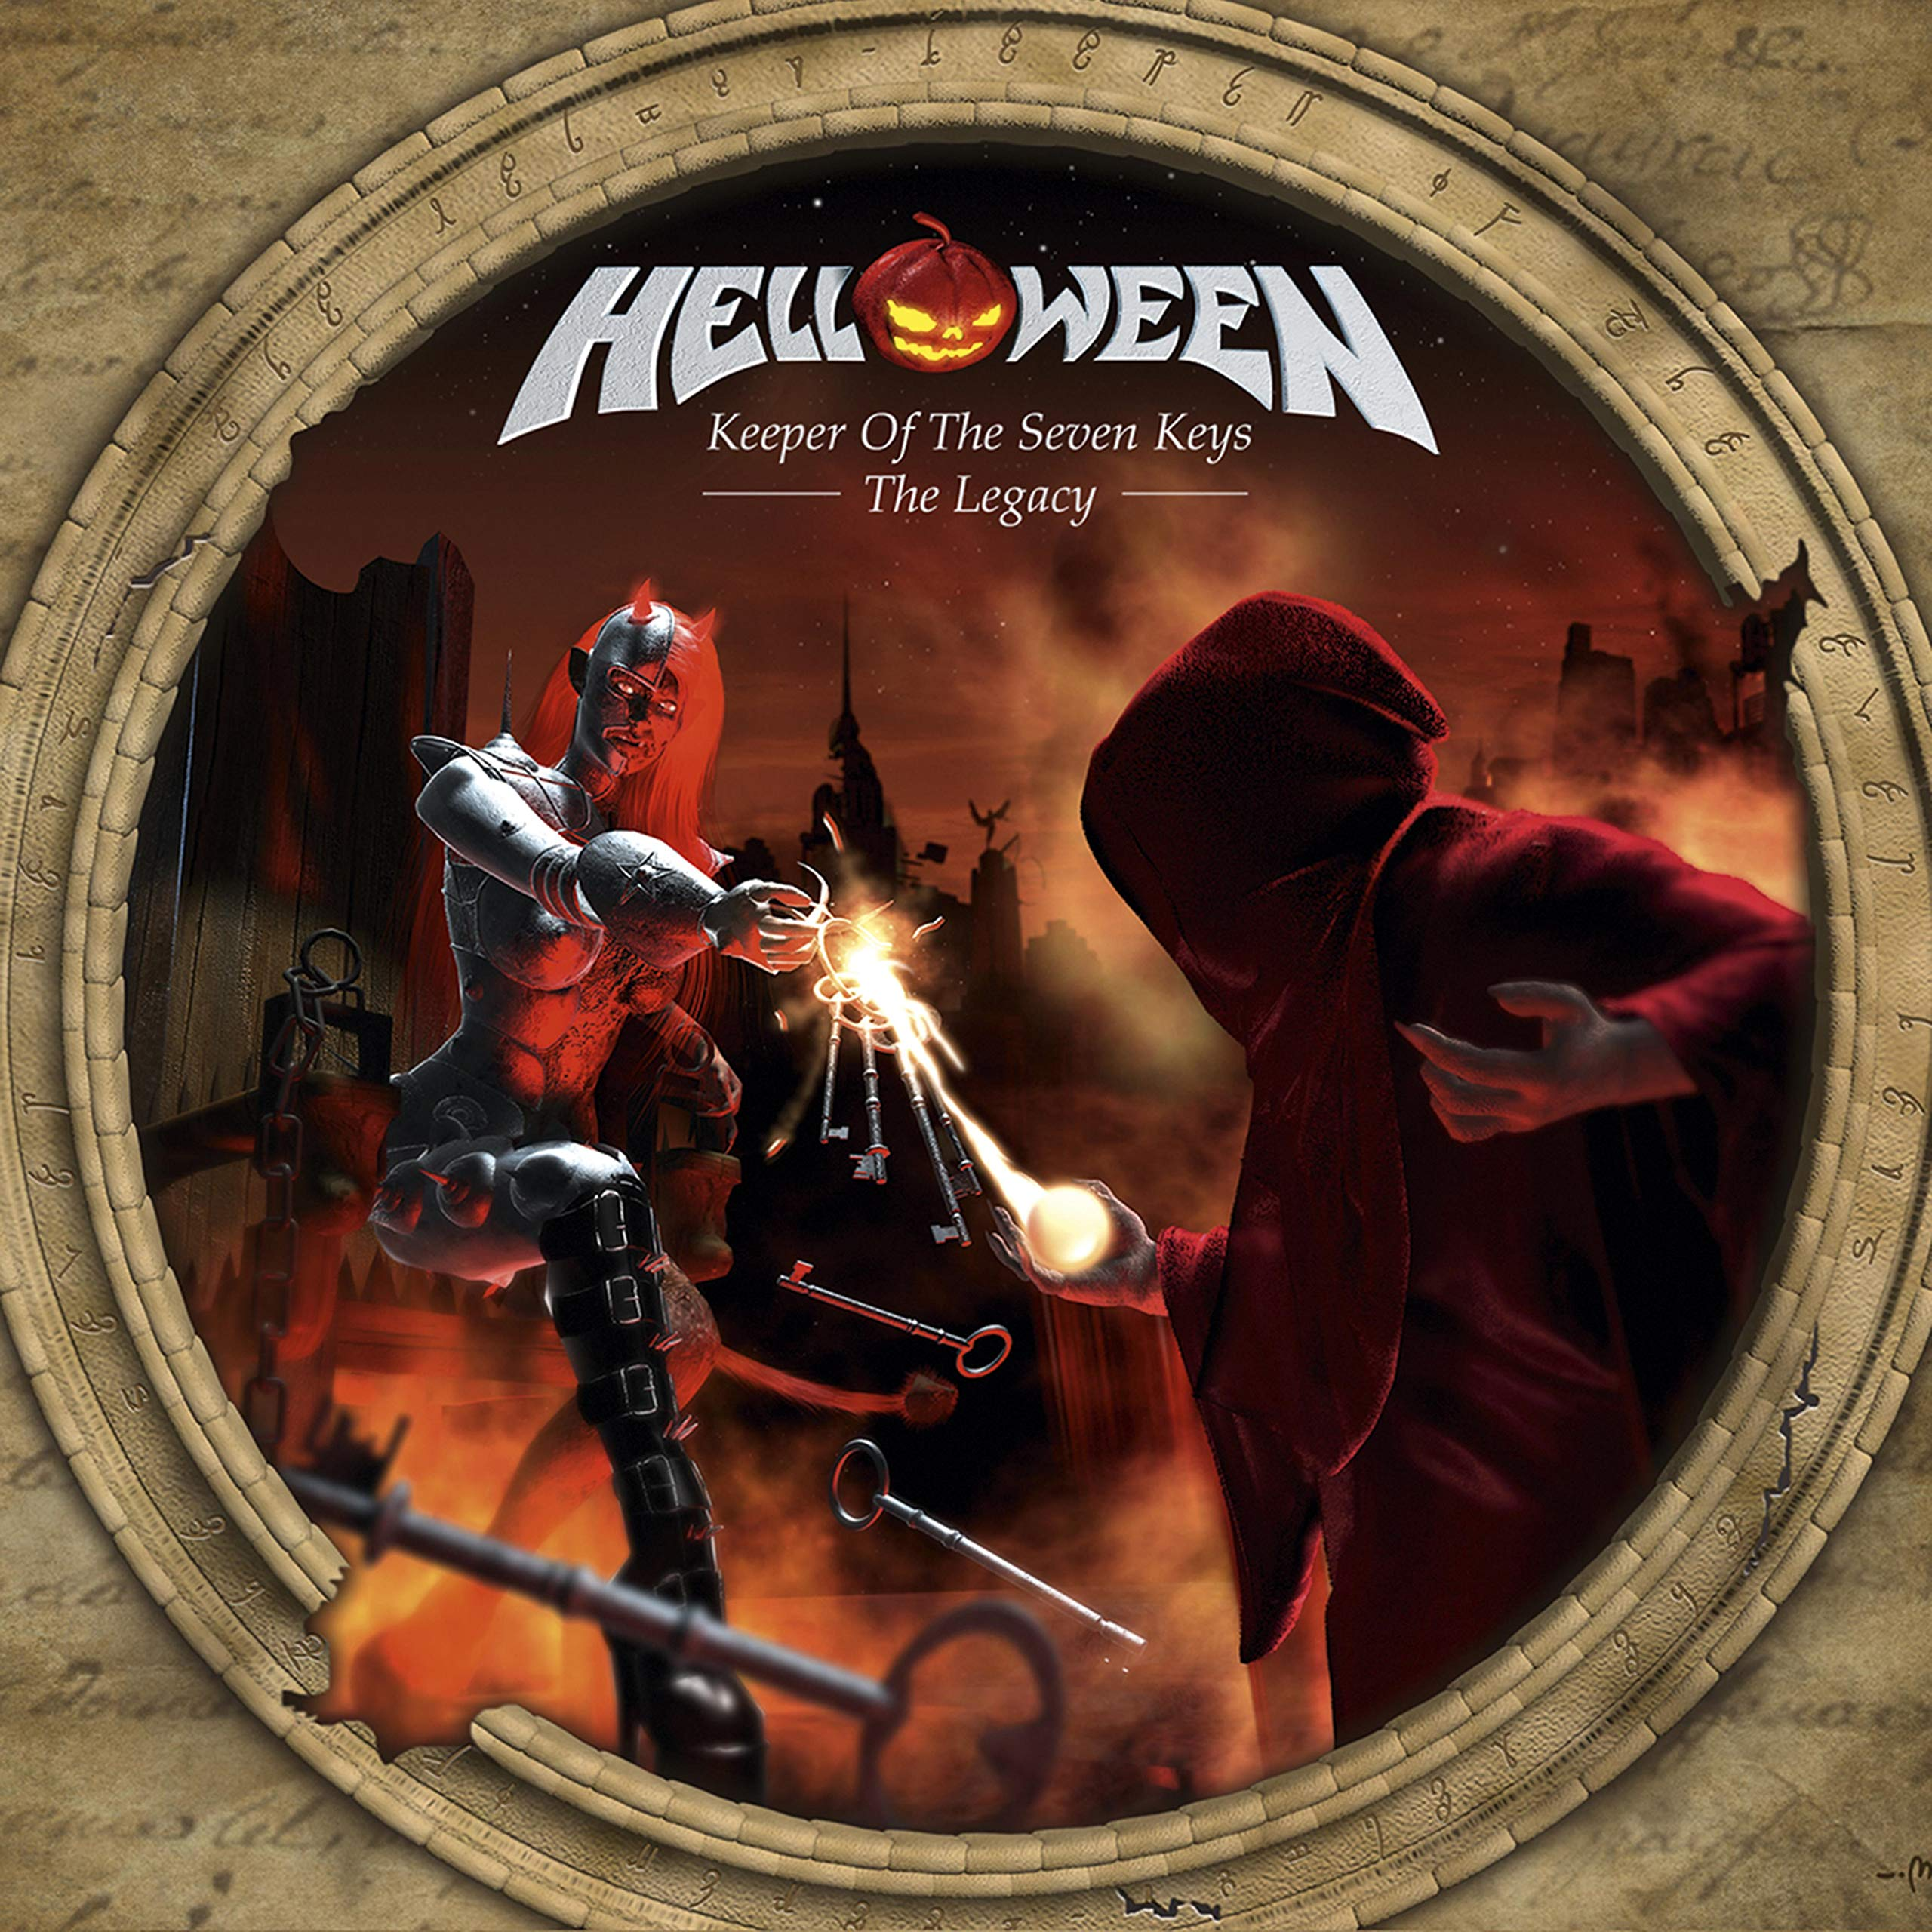 Helloween – Keeper Of The Seven Keys – The Legacy (2019) [FLAC]